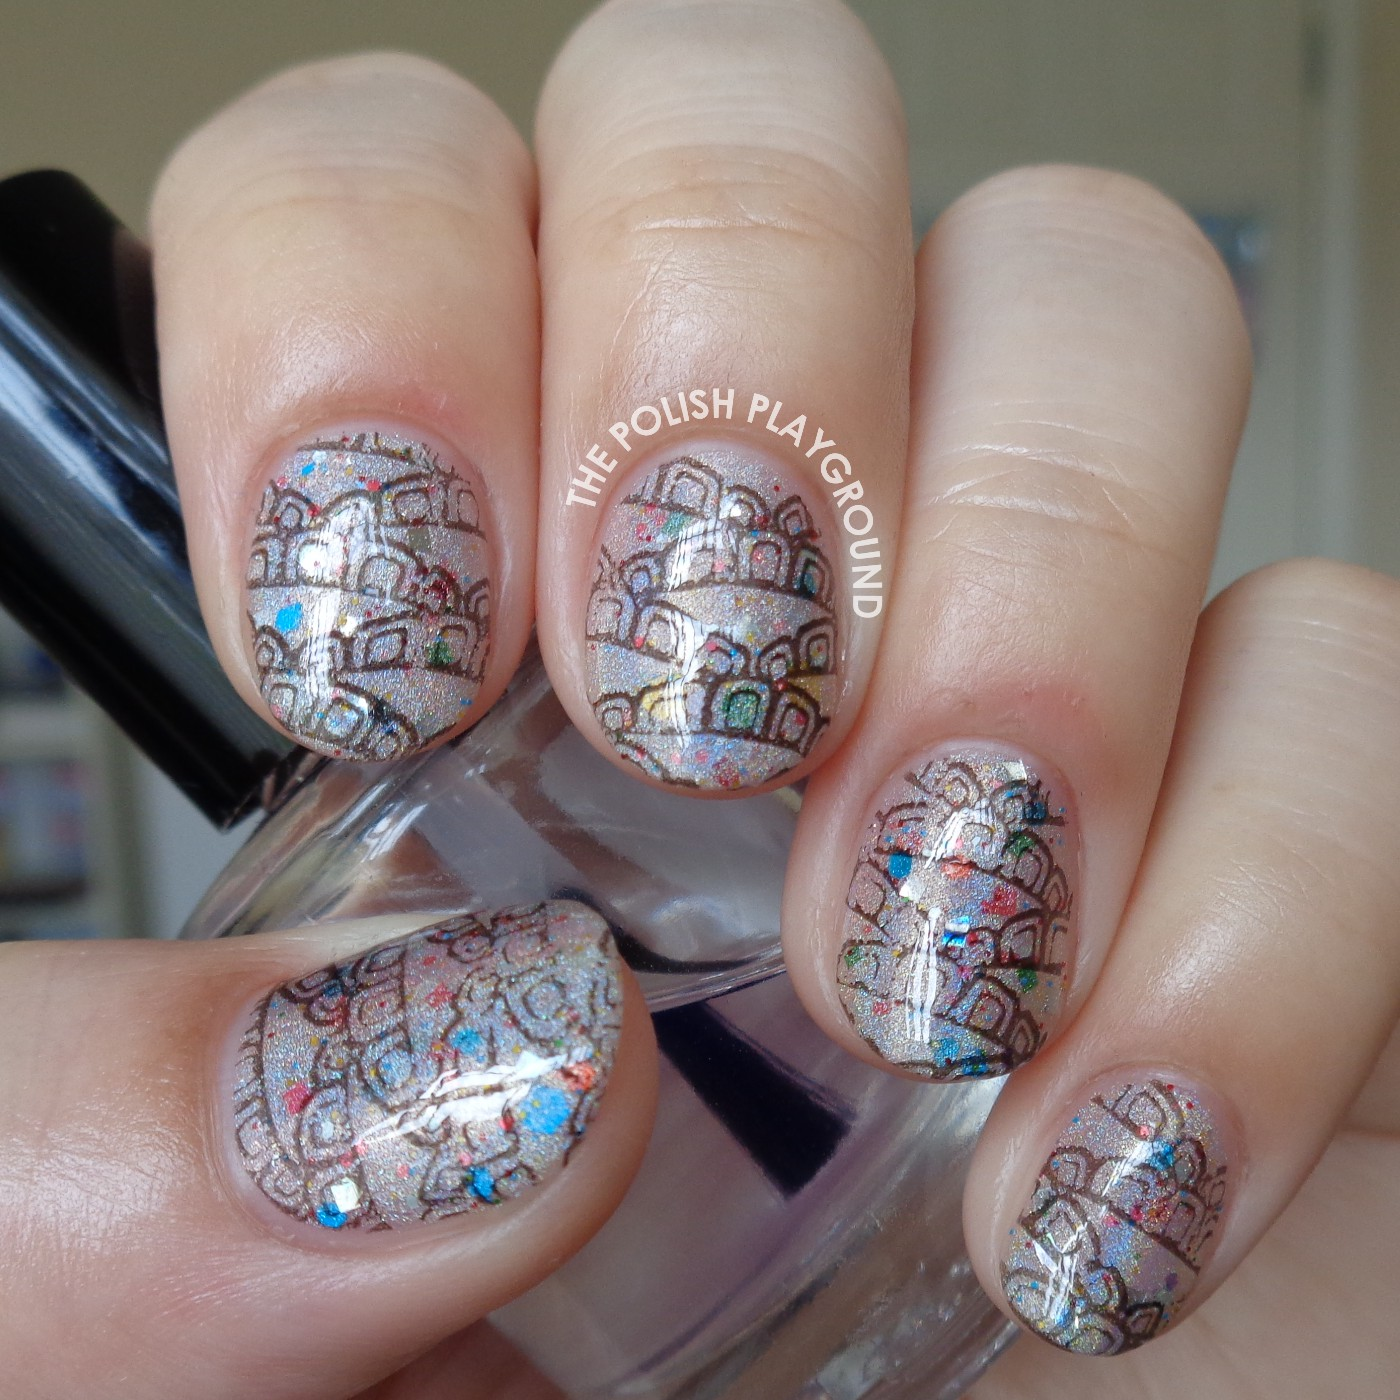 Holographic and Glittery Base with Black Pattern Stamping Nai Art